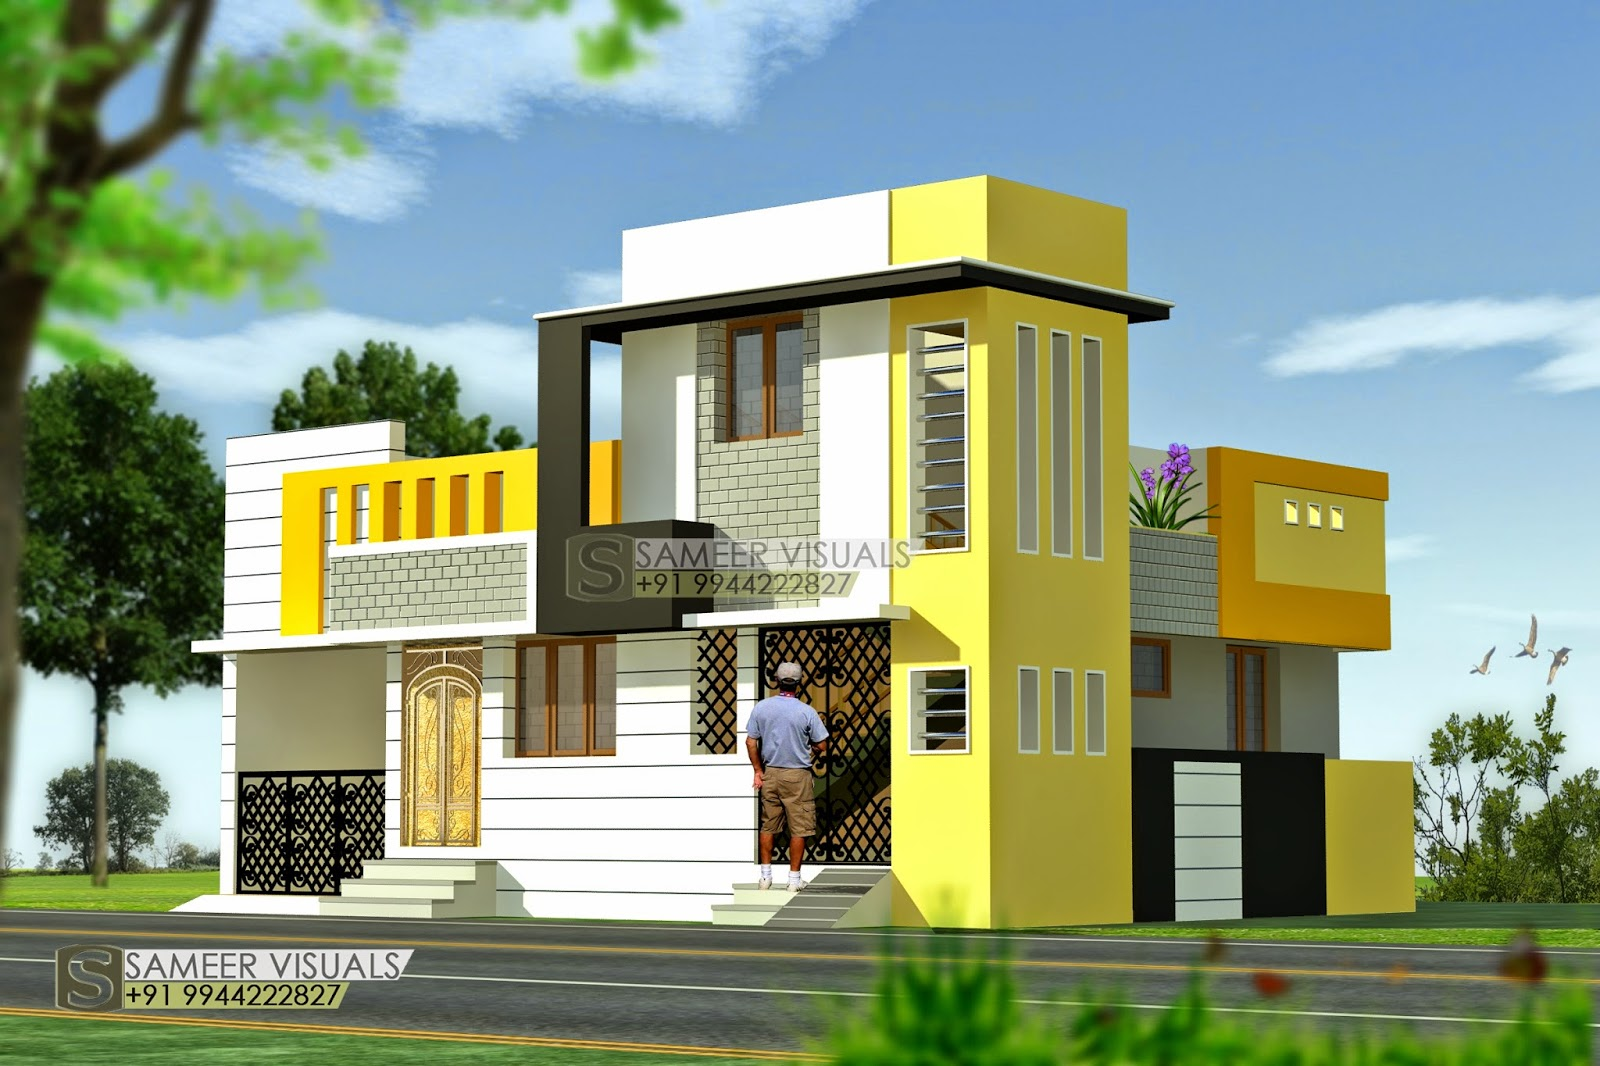 Ground Floor House Elevation Design : Sameer visuals